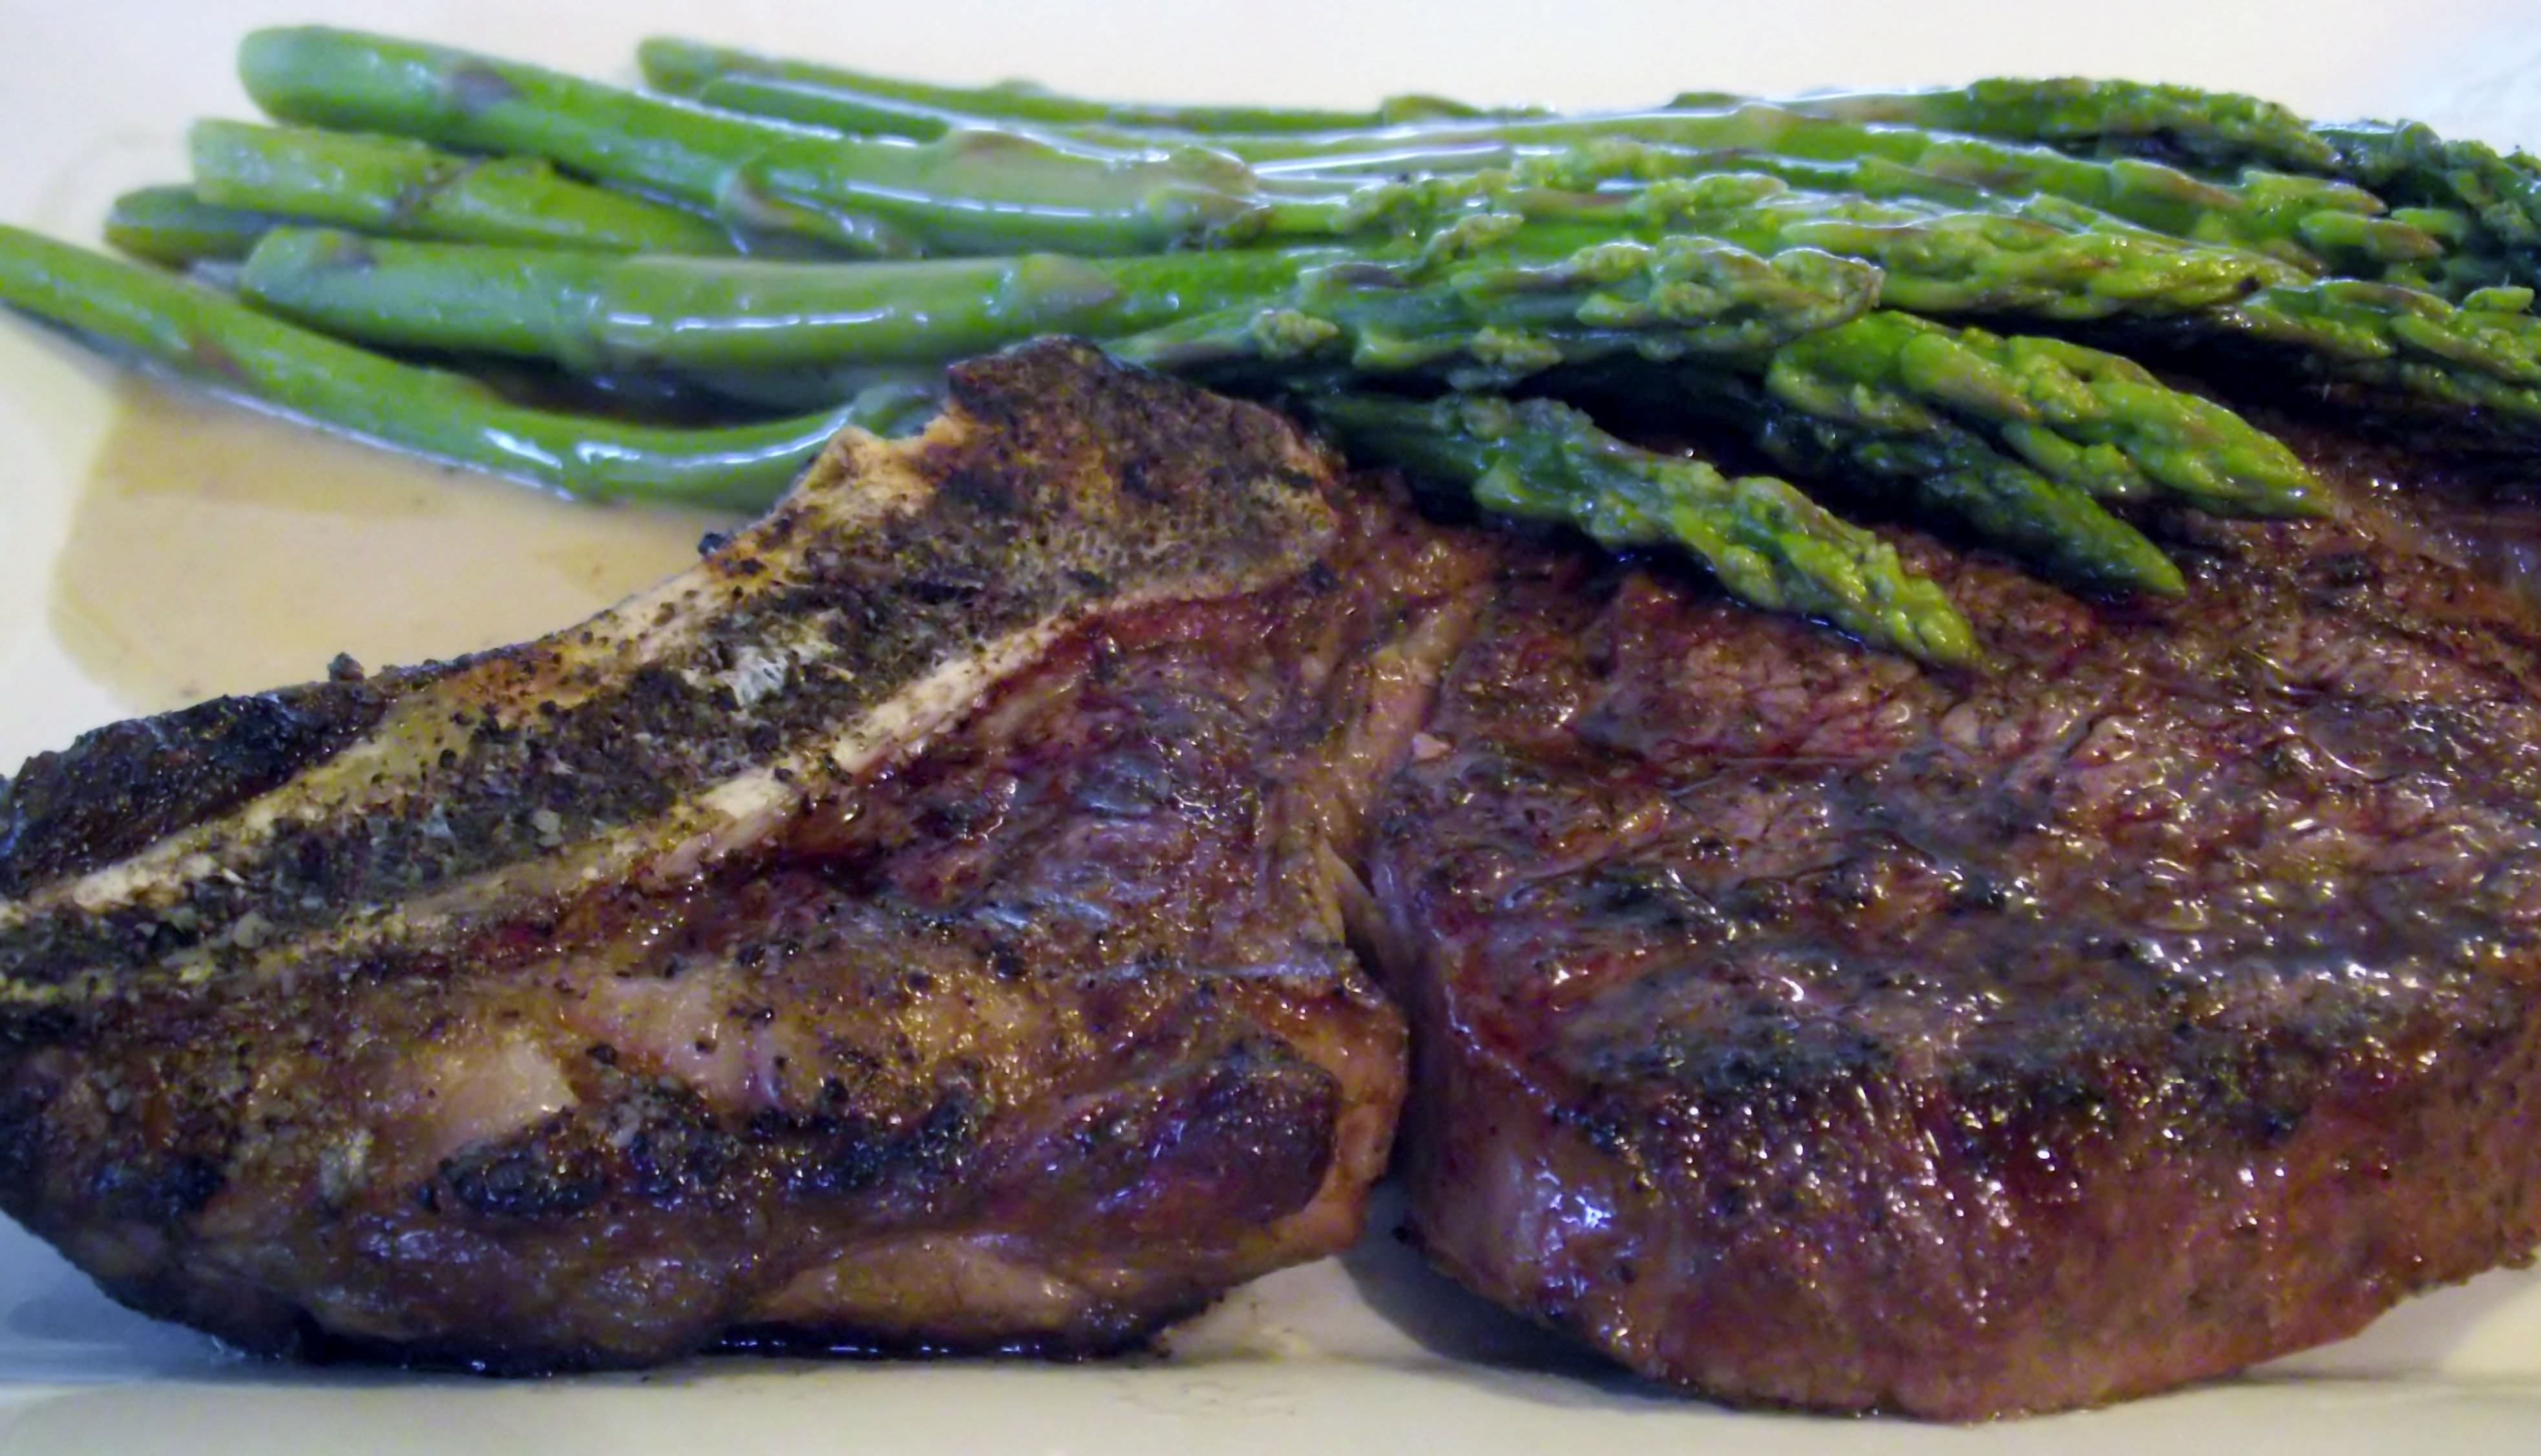 Grilled beef ribeye, sautee asparagus, and beurre blanc.